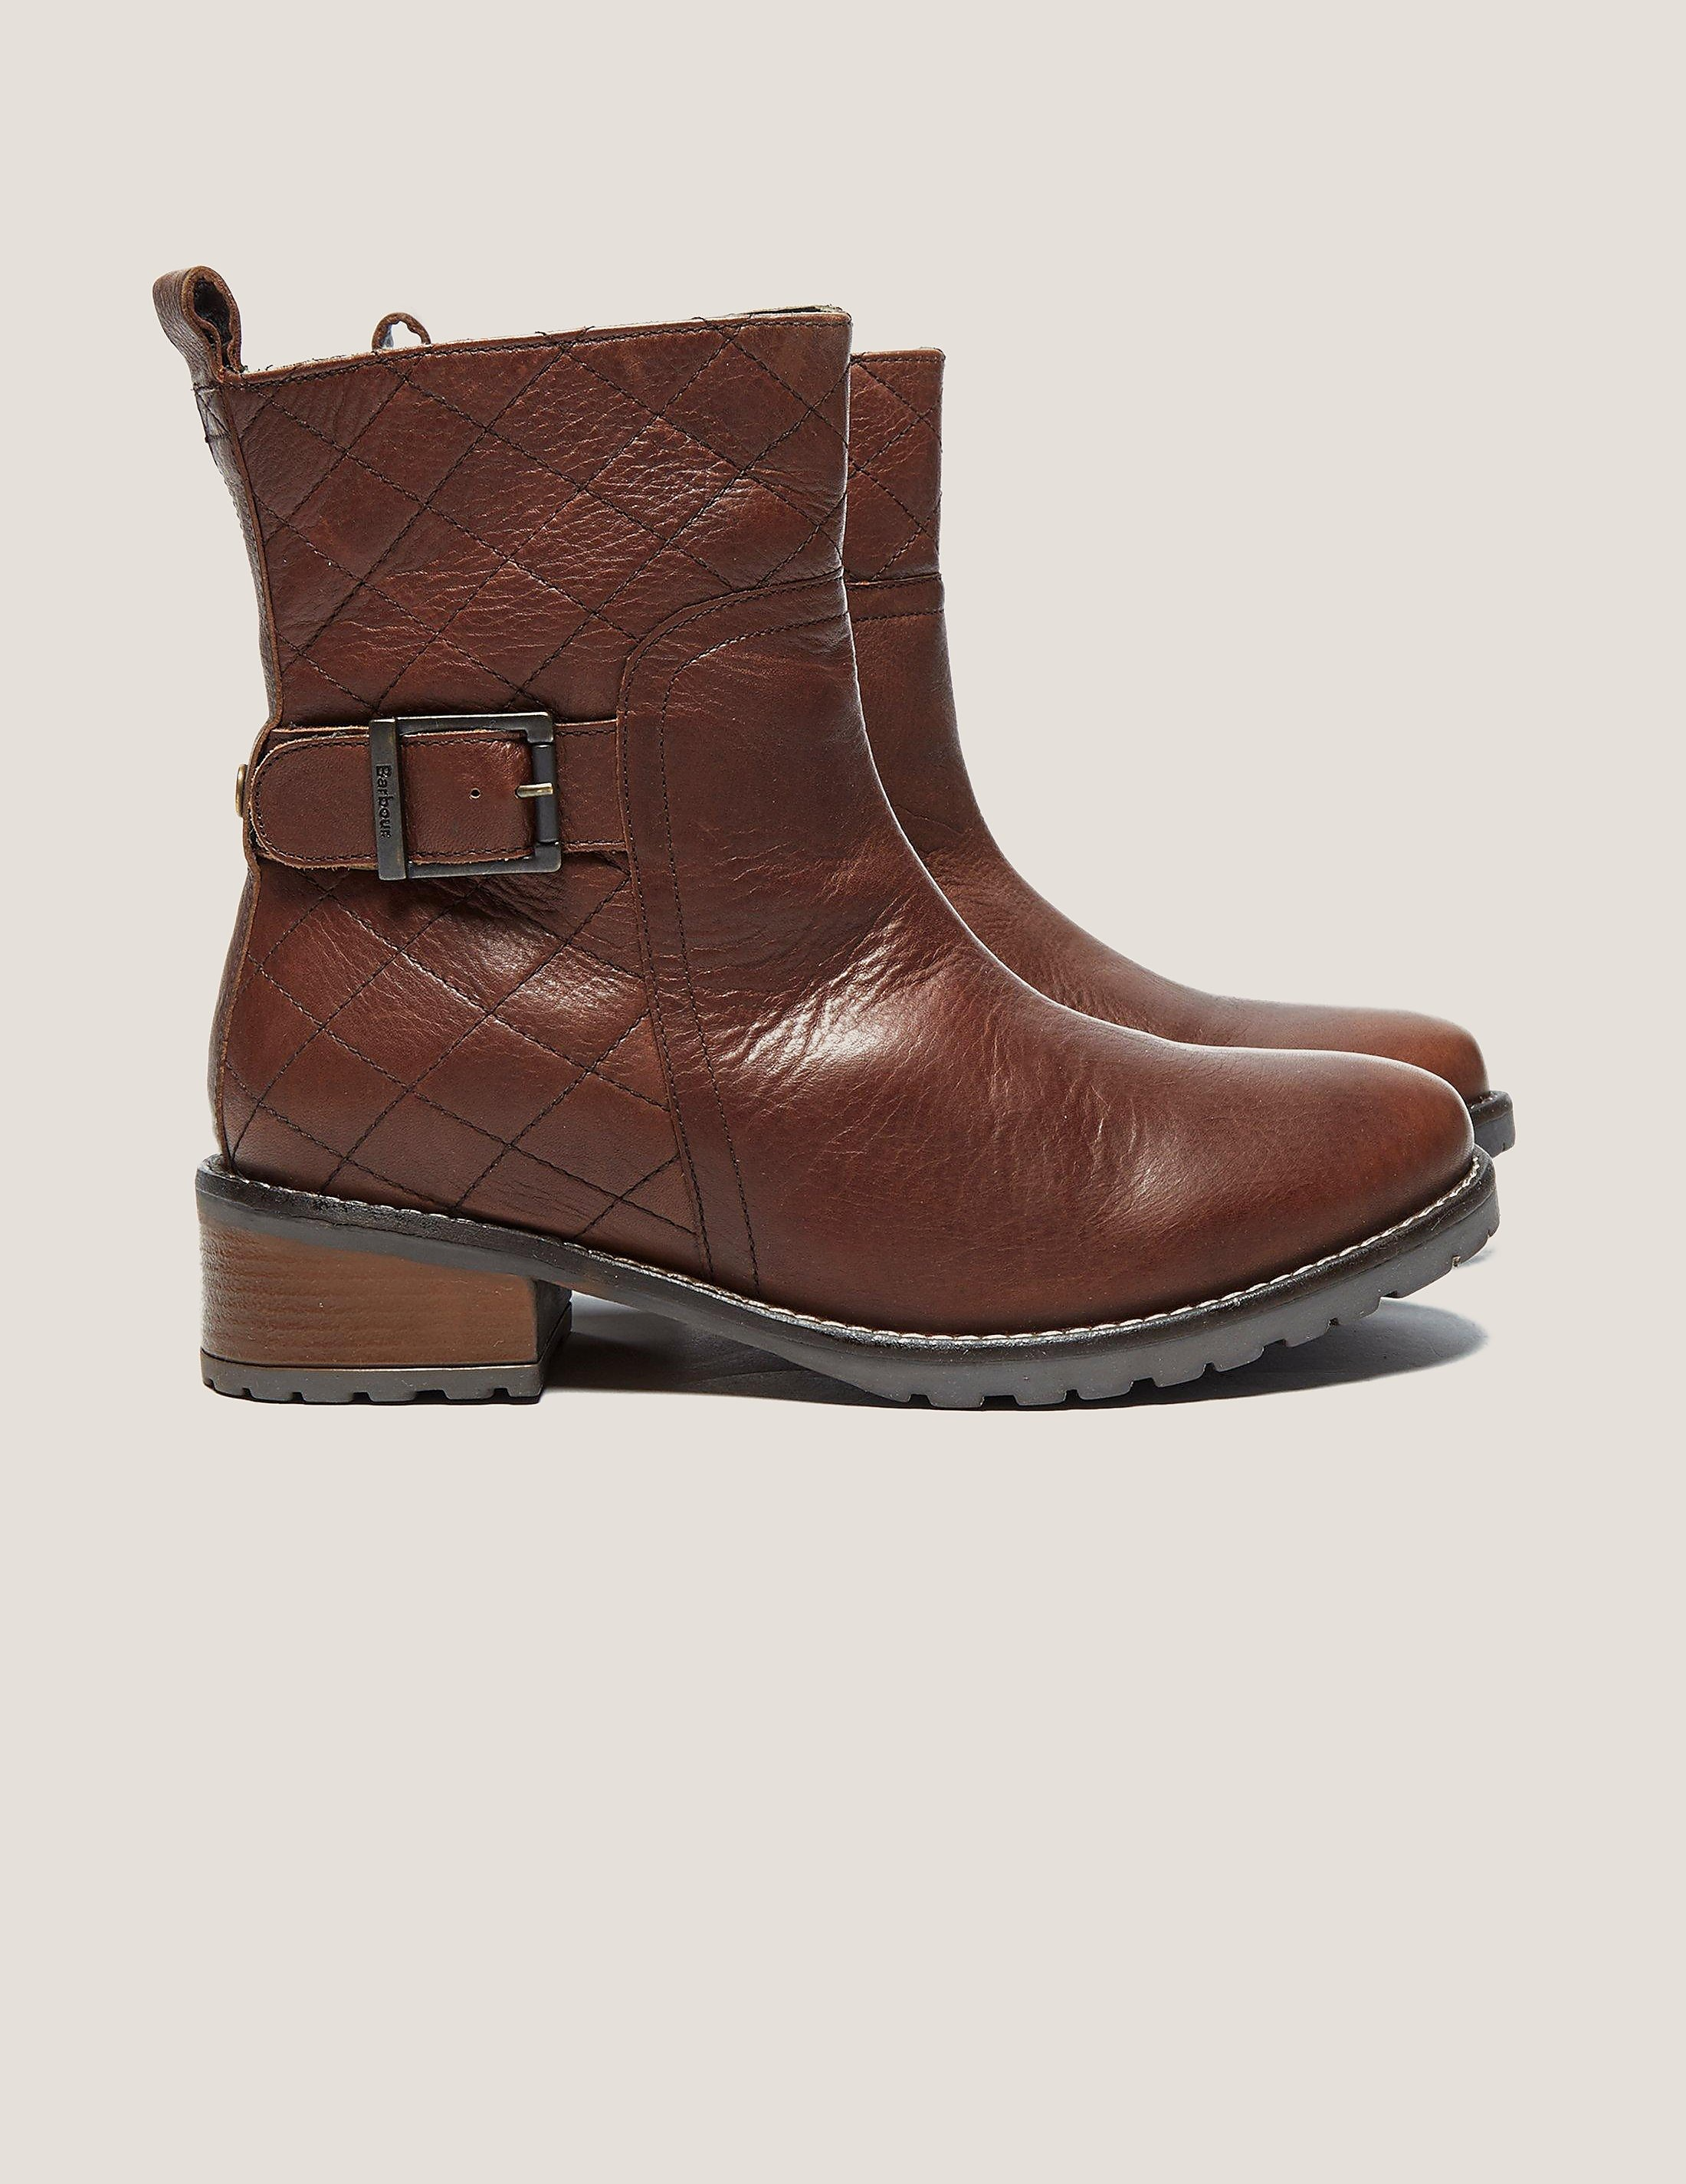 Barbour Quilted Biker Boot